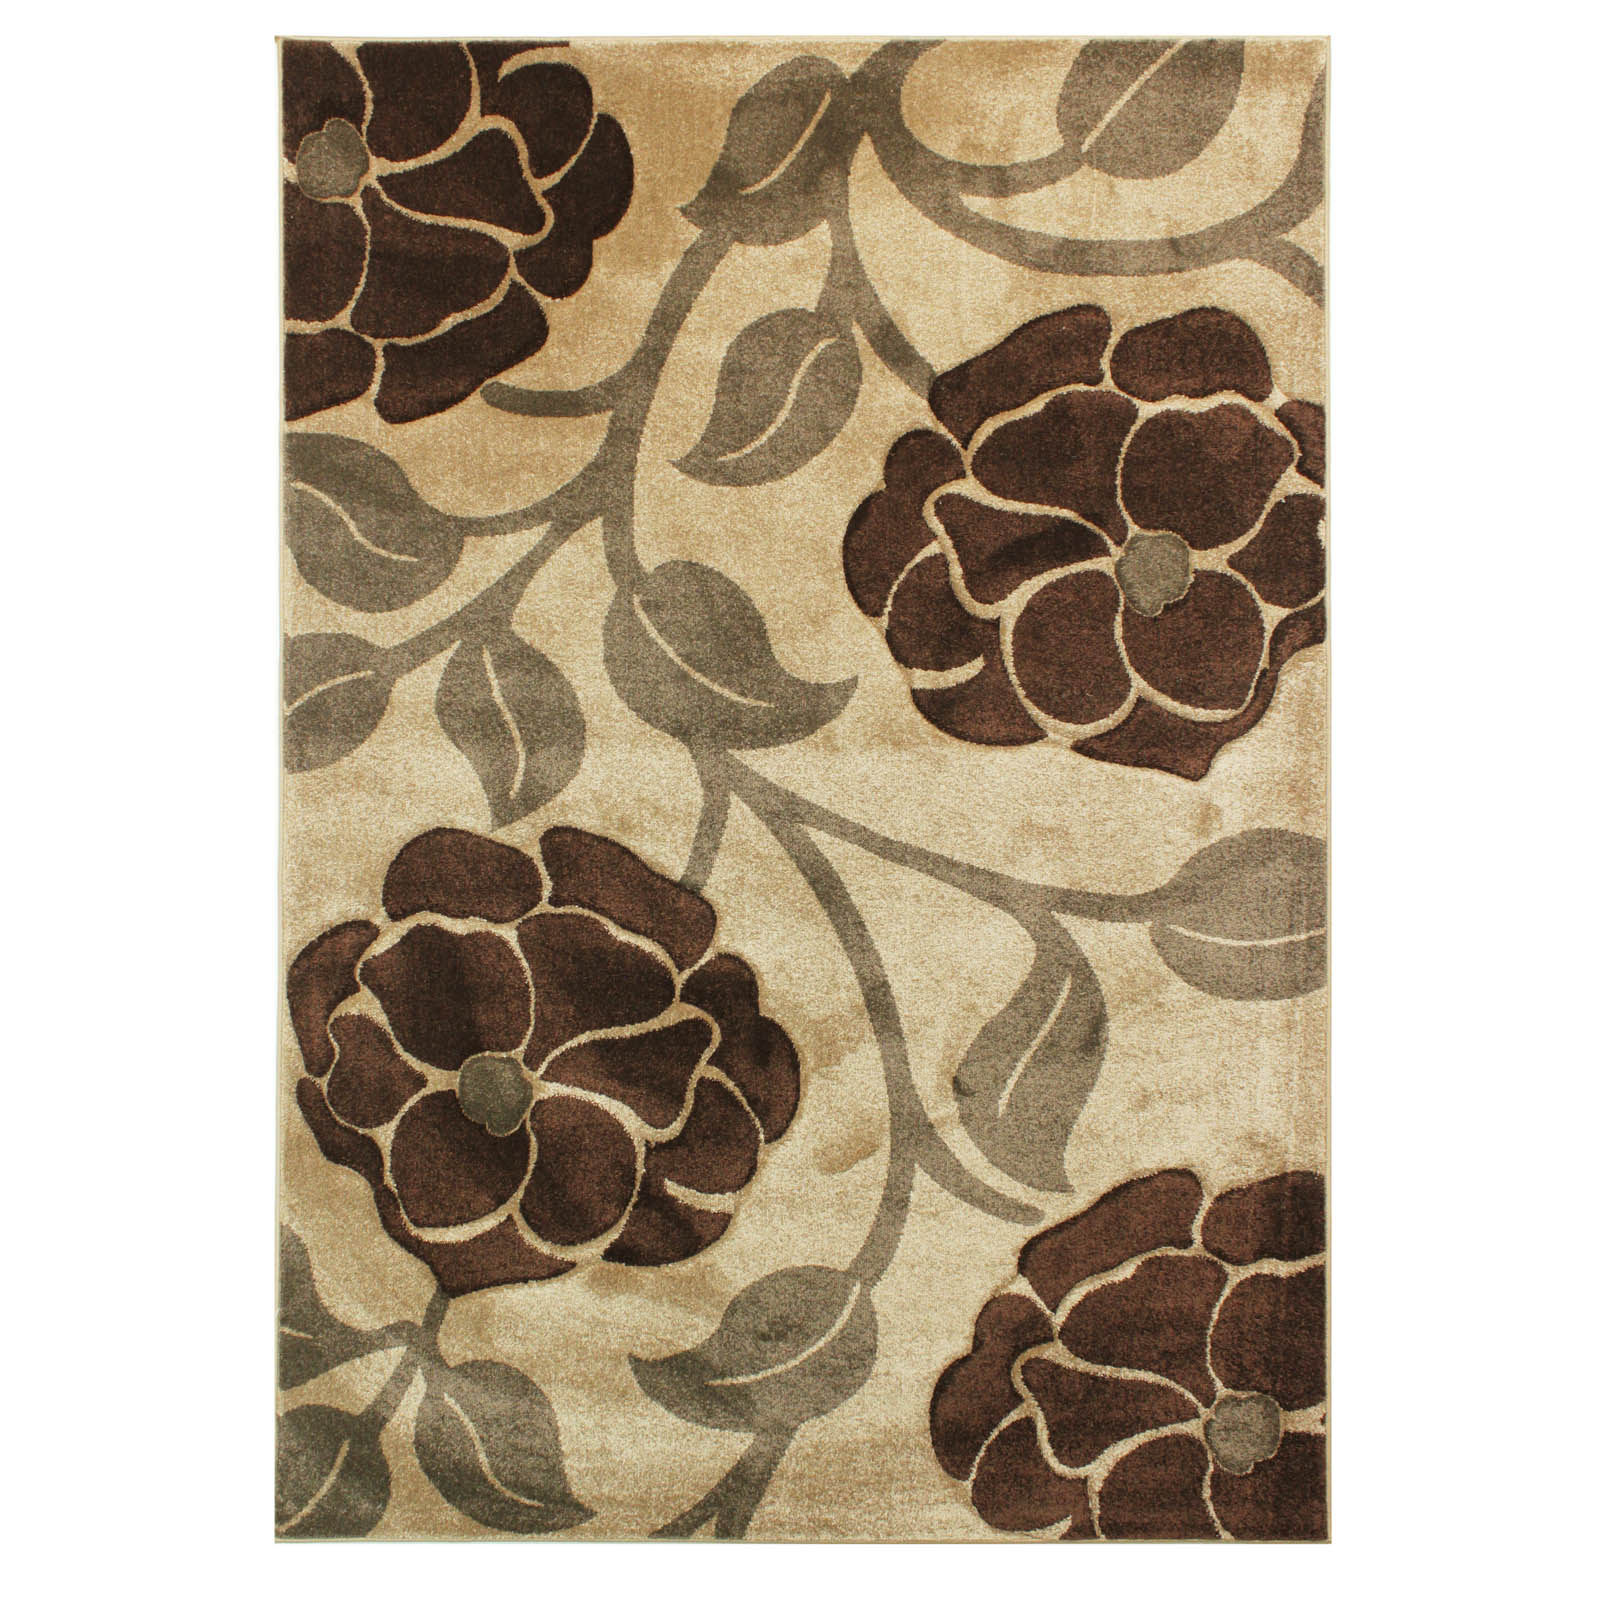 Hand Carved Vine Rugs in Beige and Brown